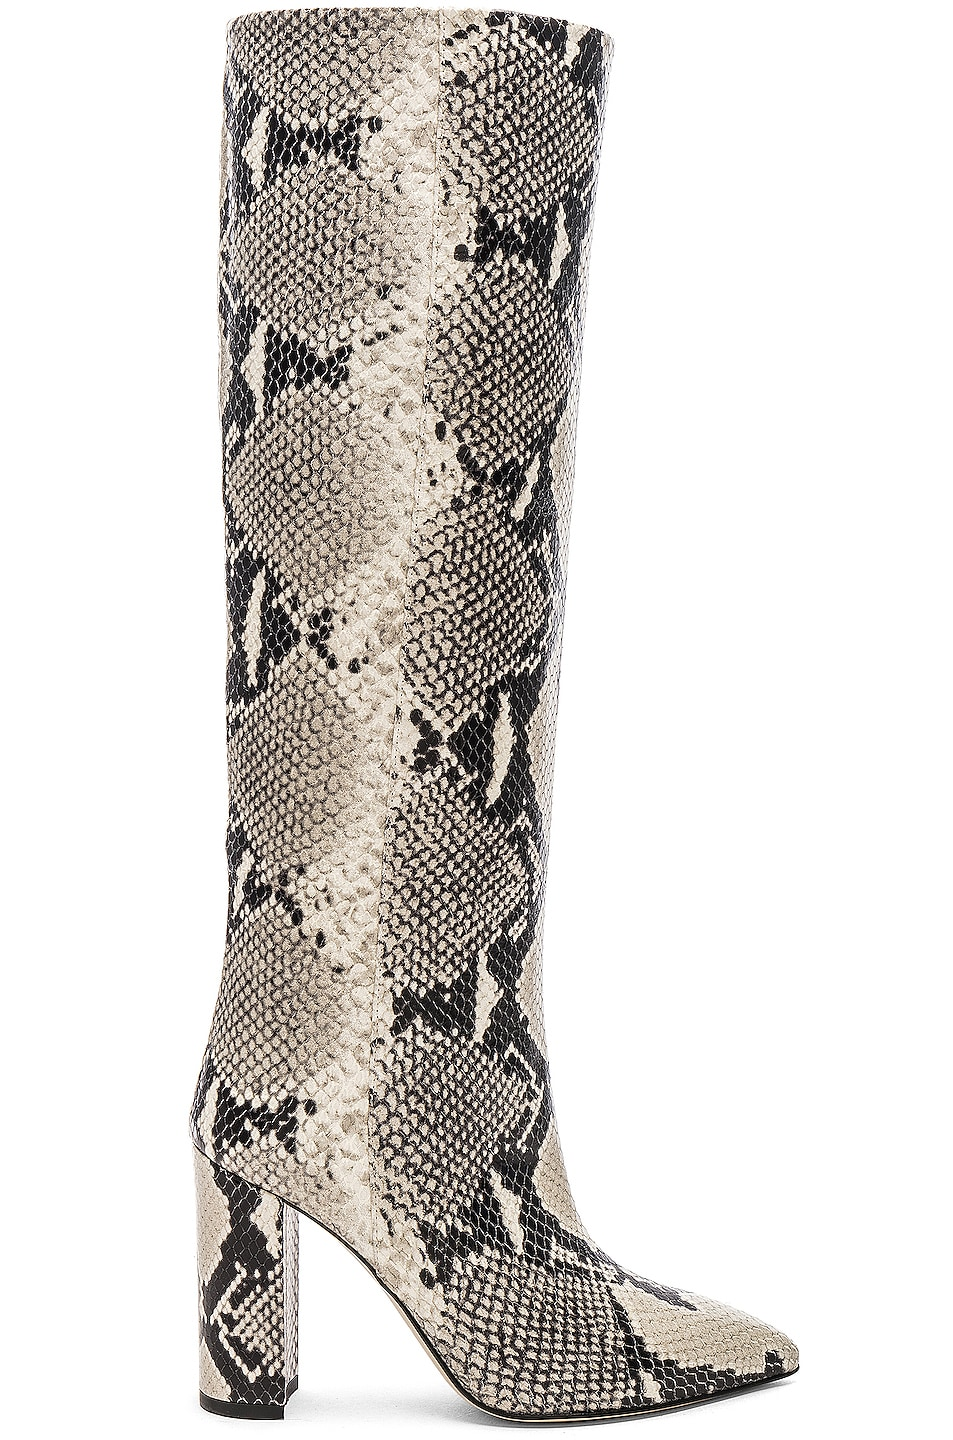 Image 1 of Paris Texas Knee High Boot in Natural Snake